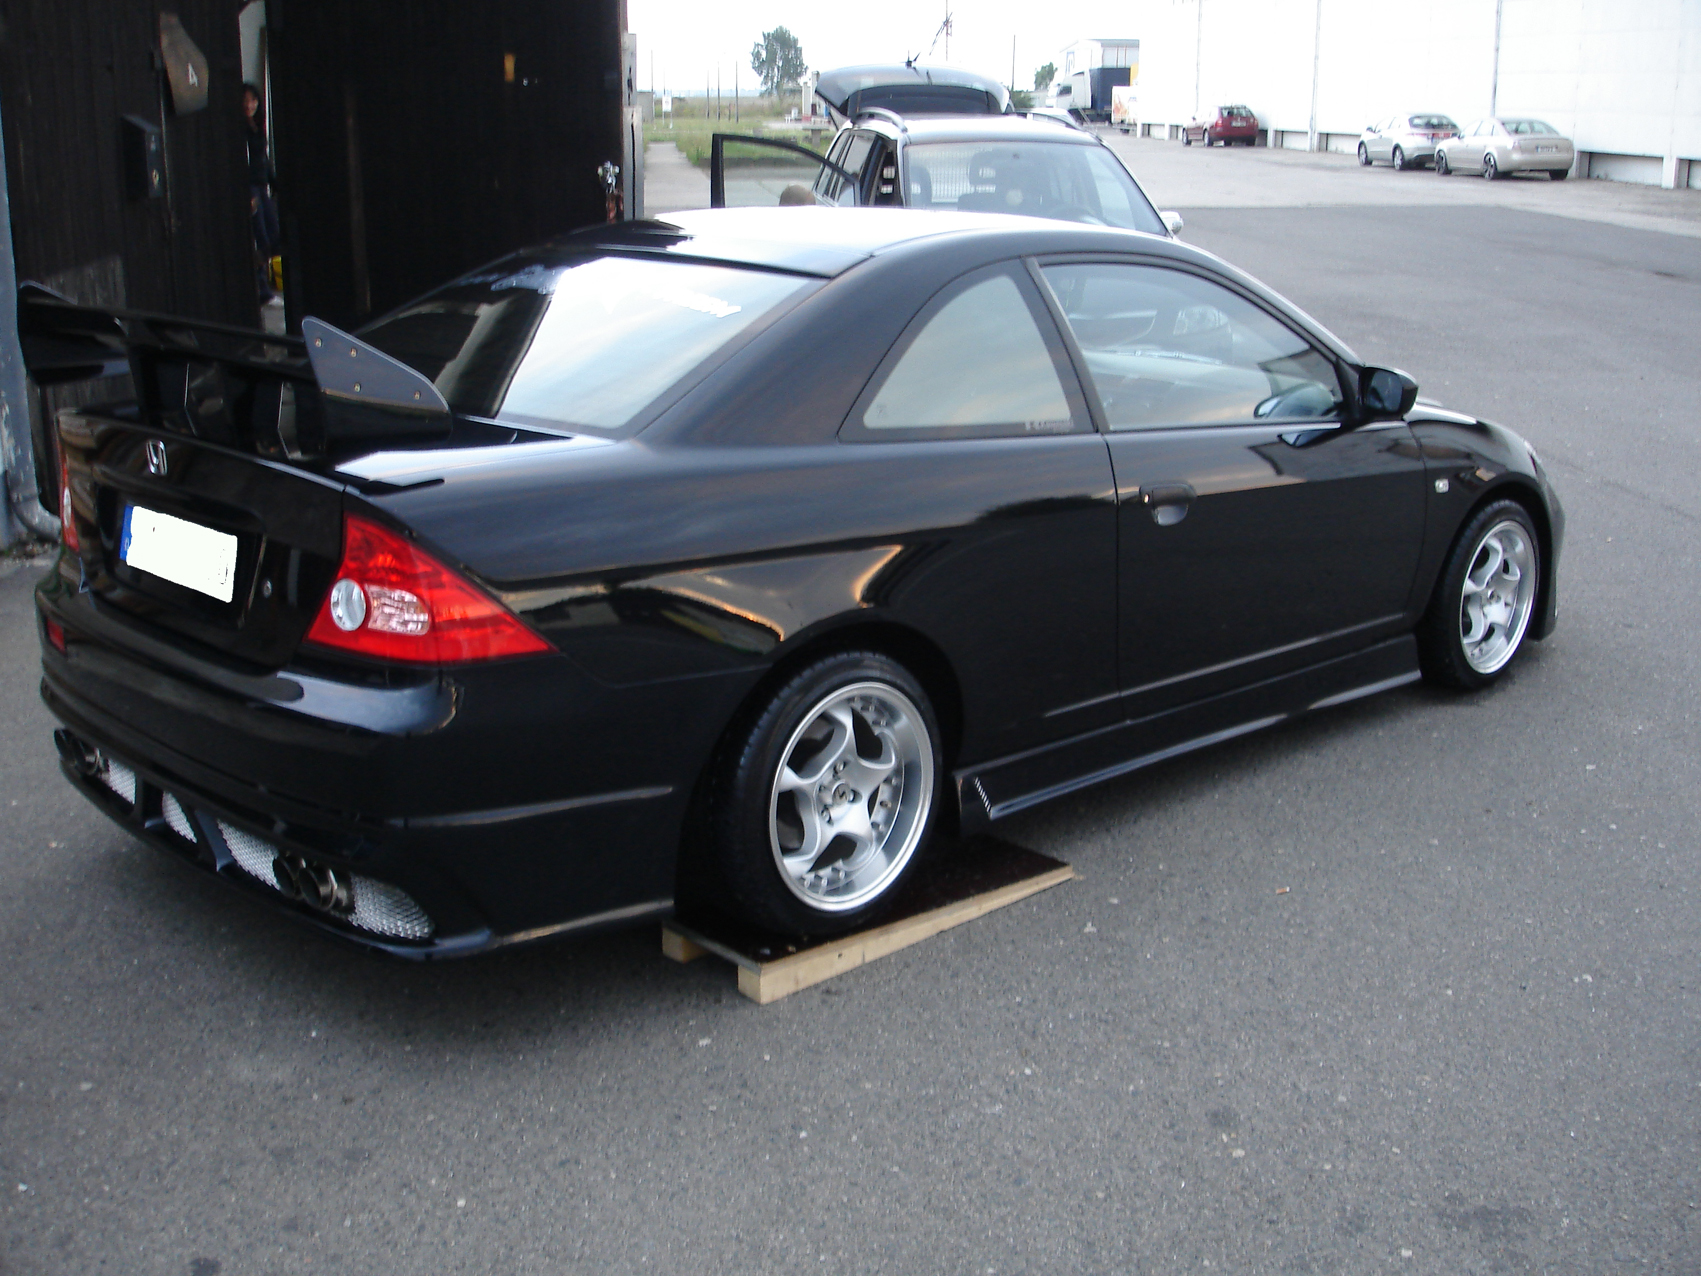 Honda coupe photo - 4